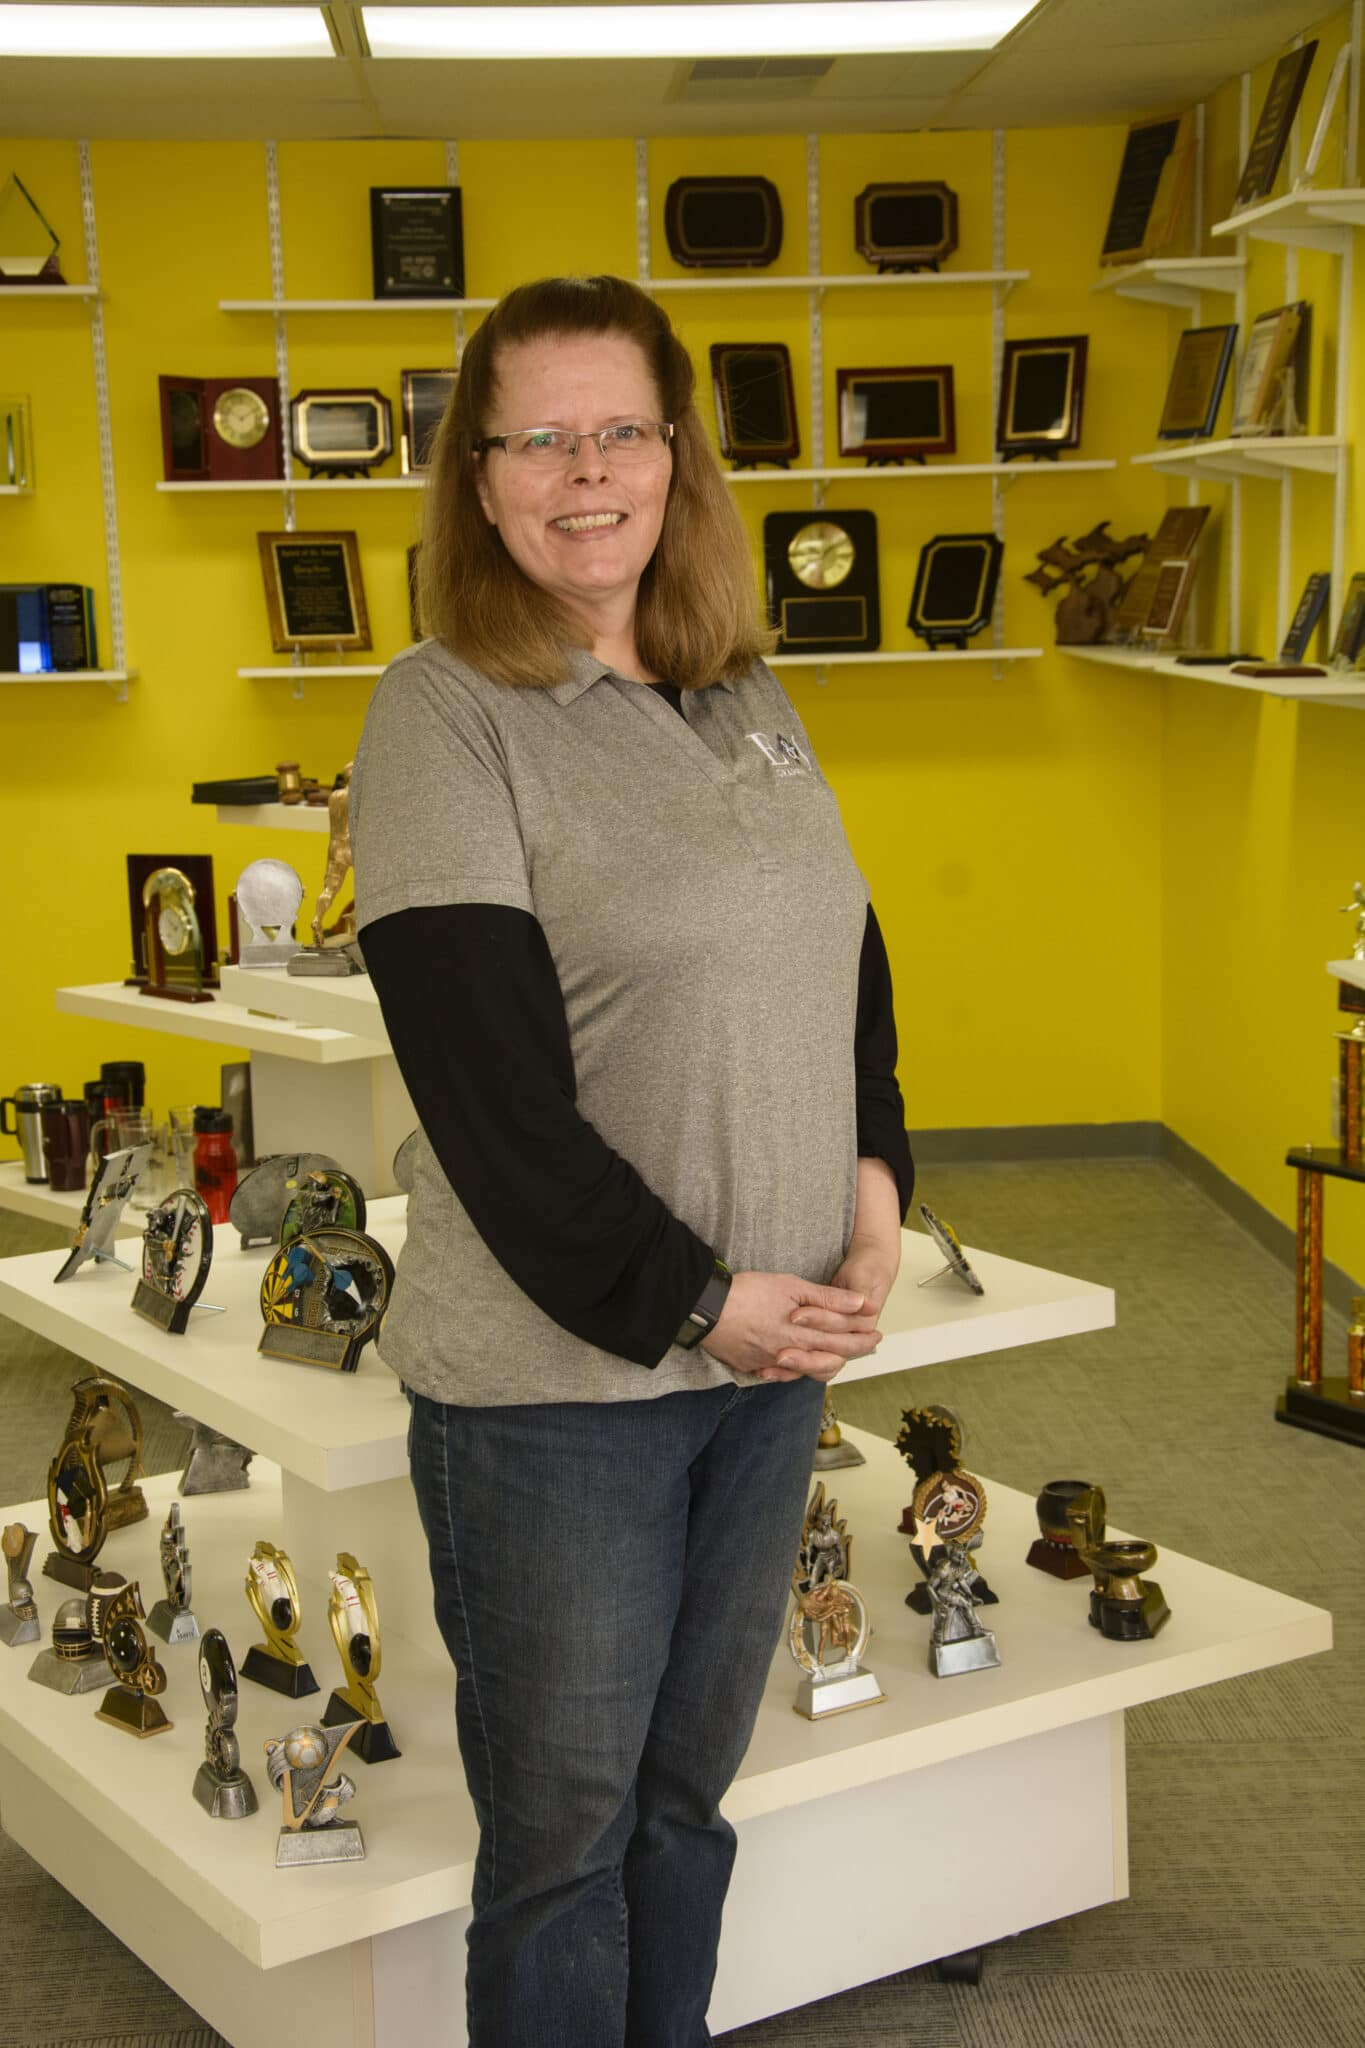 Jane Reinsmith, Engraving Production Manager, E & S Graphics